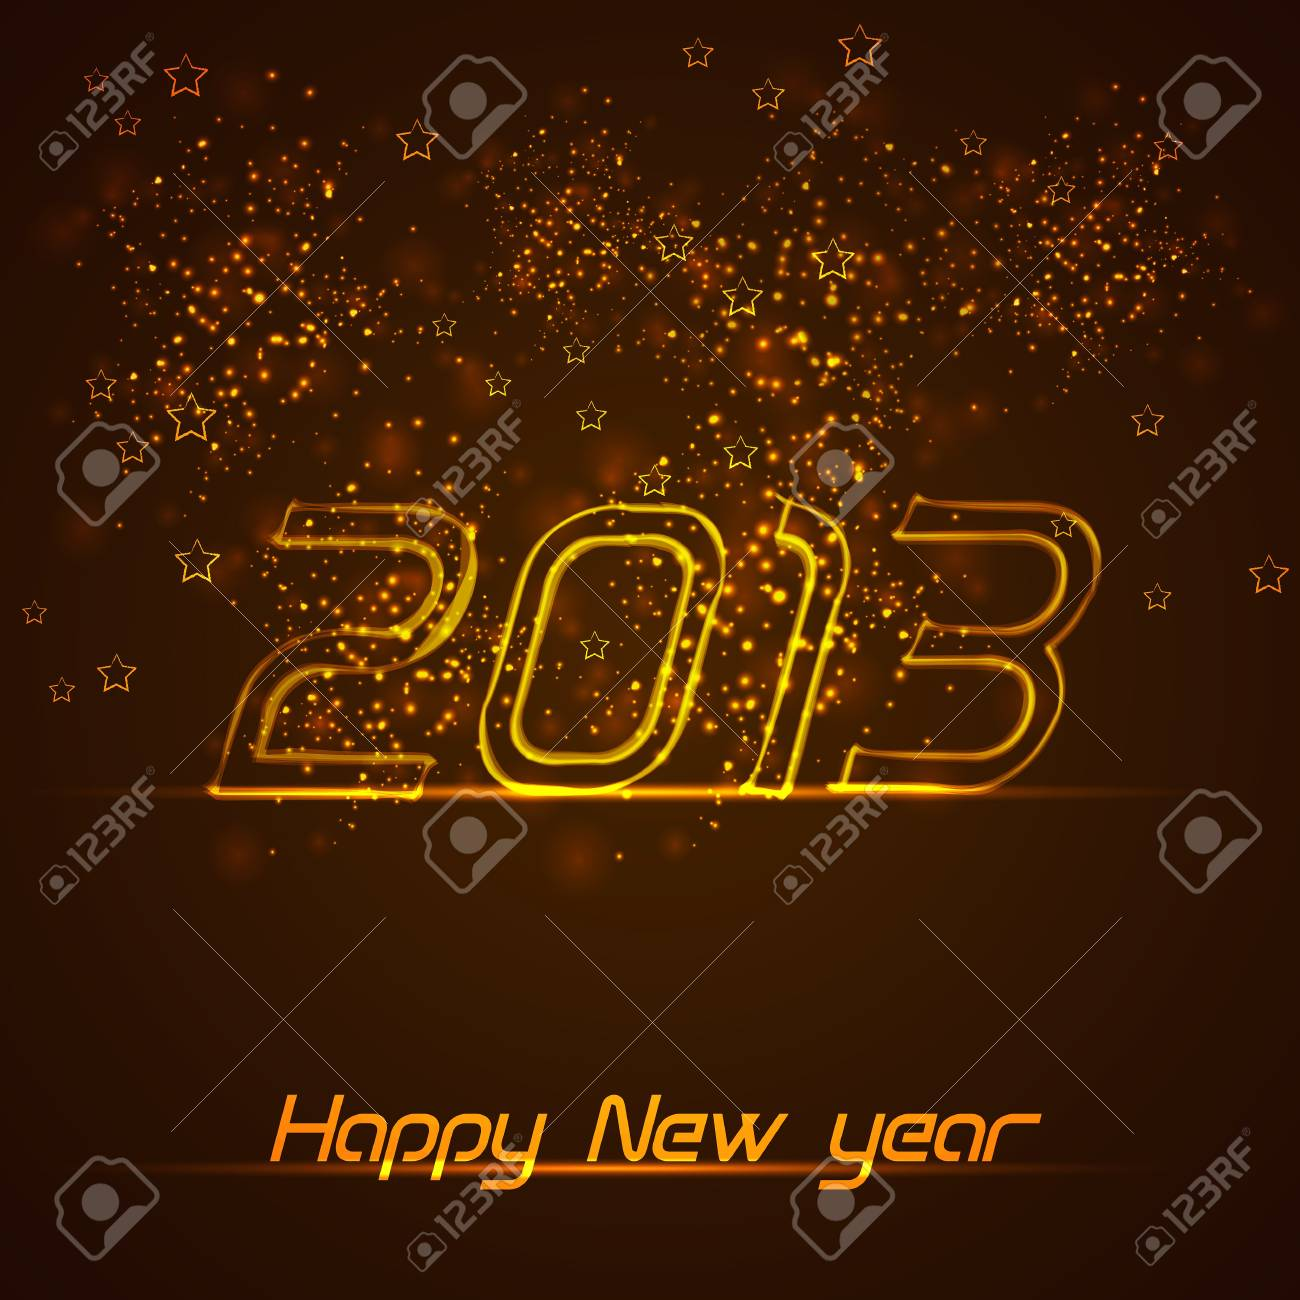 Happy New Year greeting card Stock Vector - 16641680